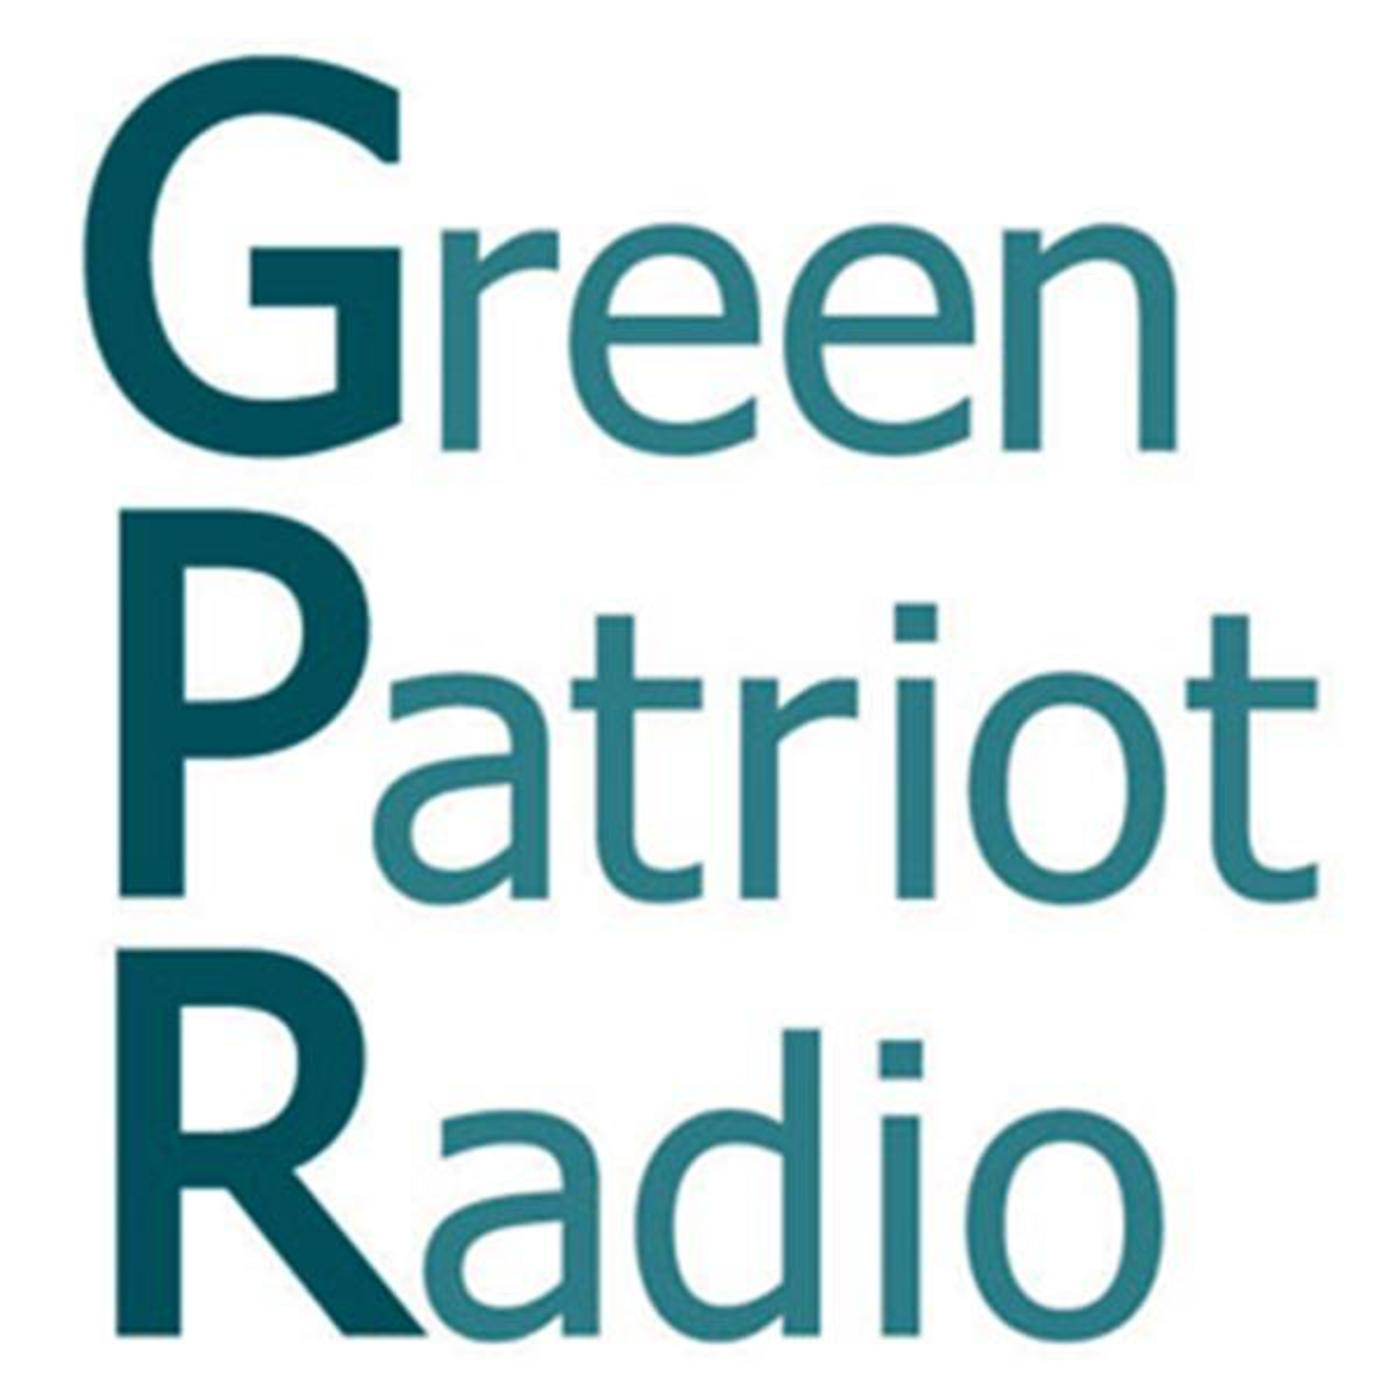 Healthy Living - Green Patriot Radio